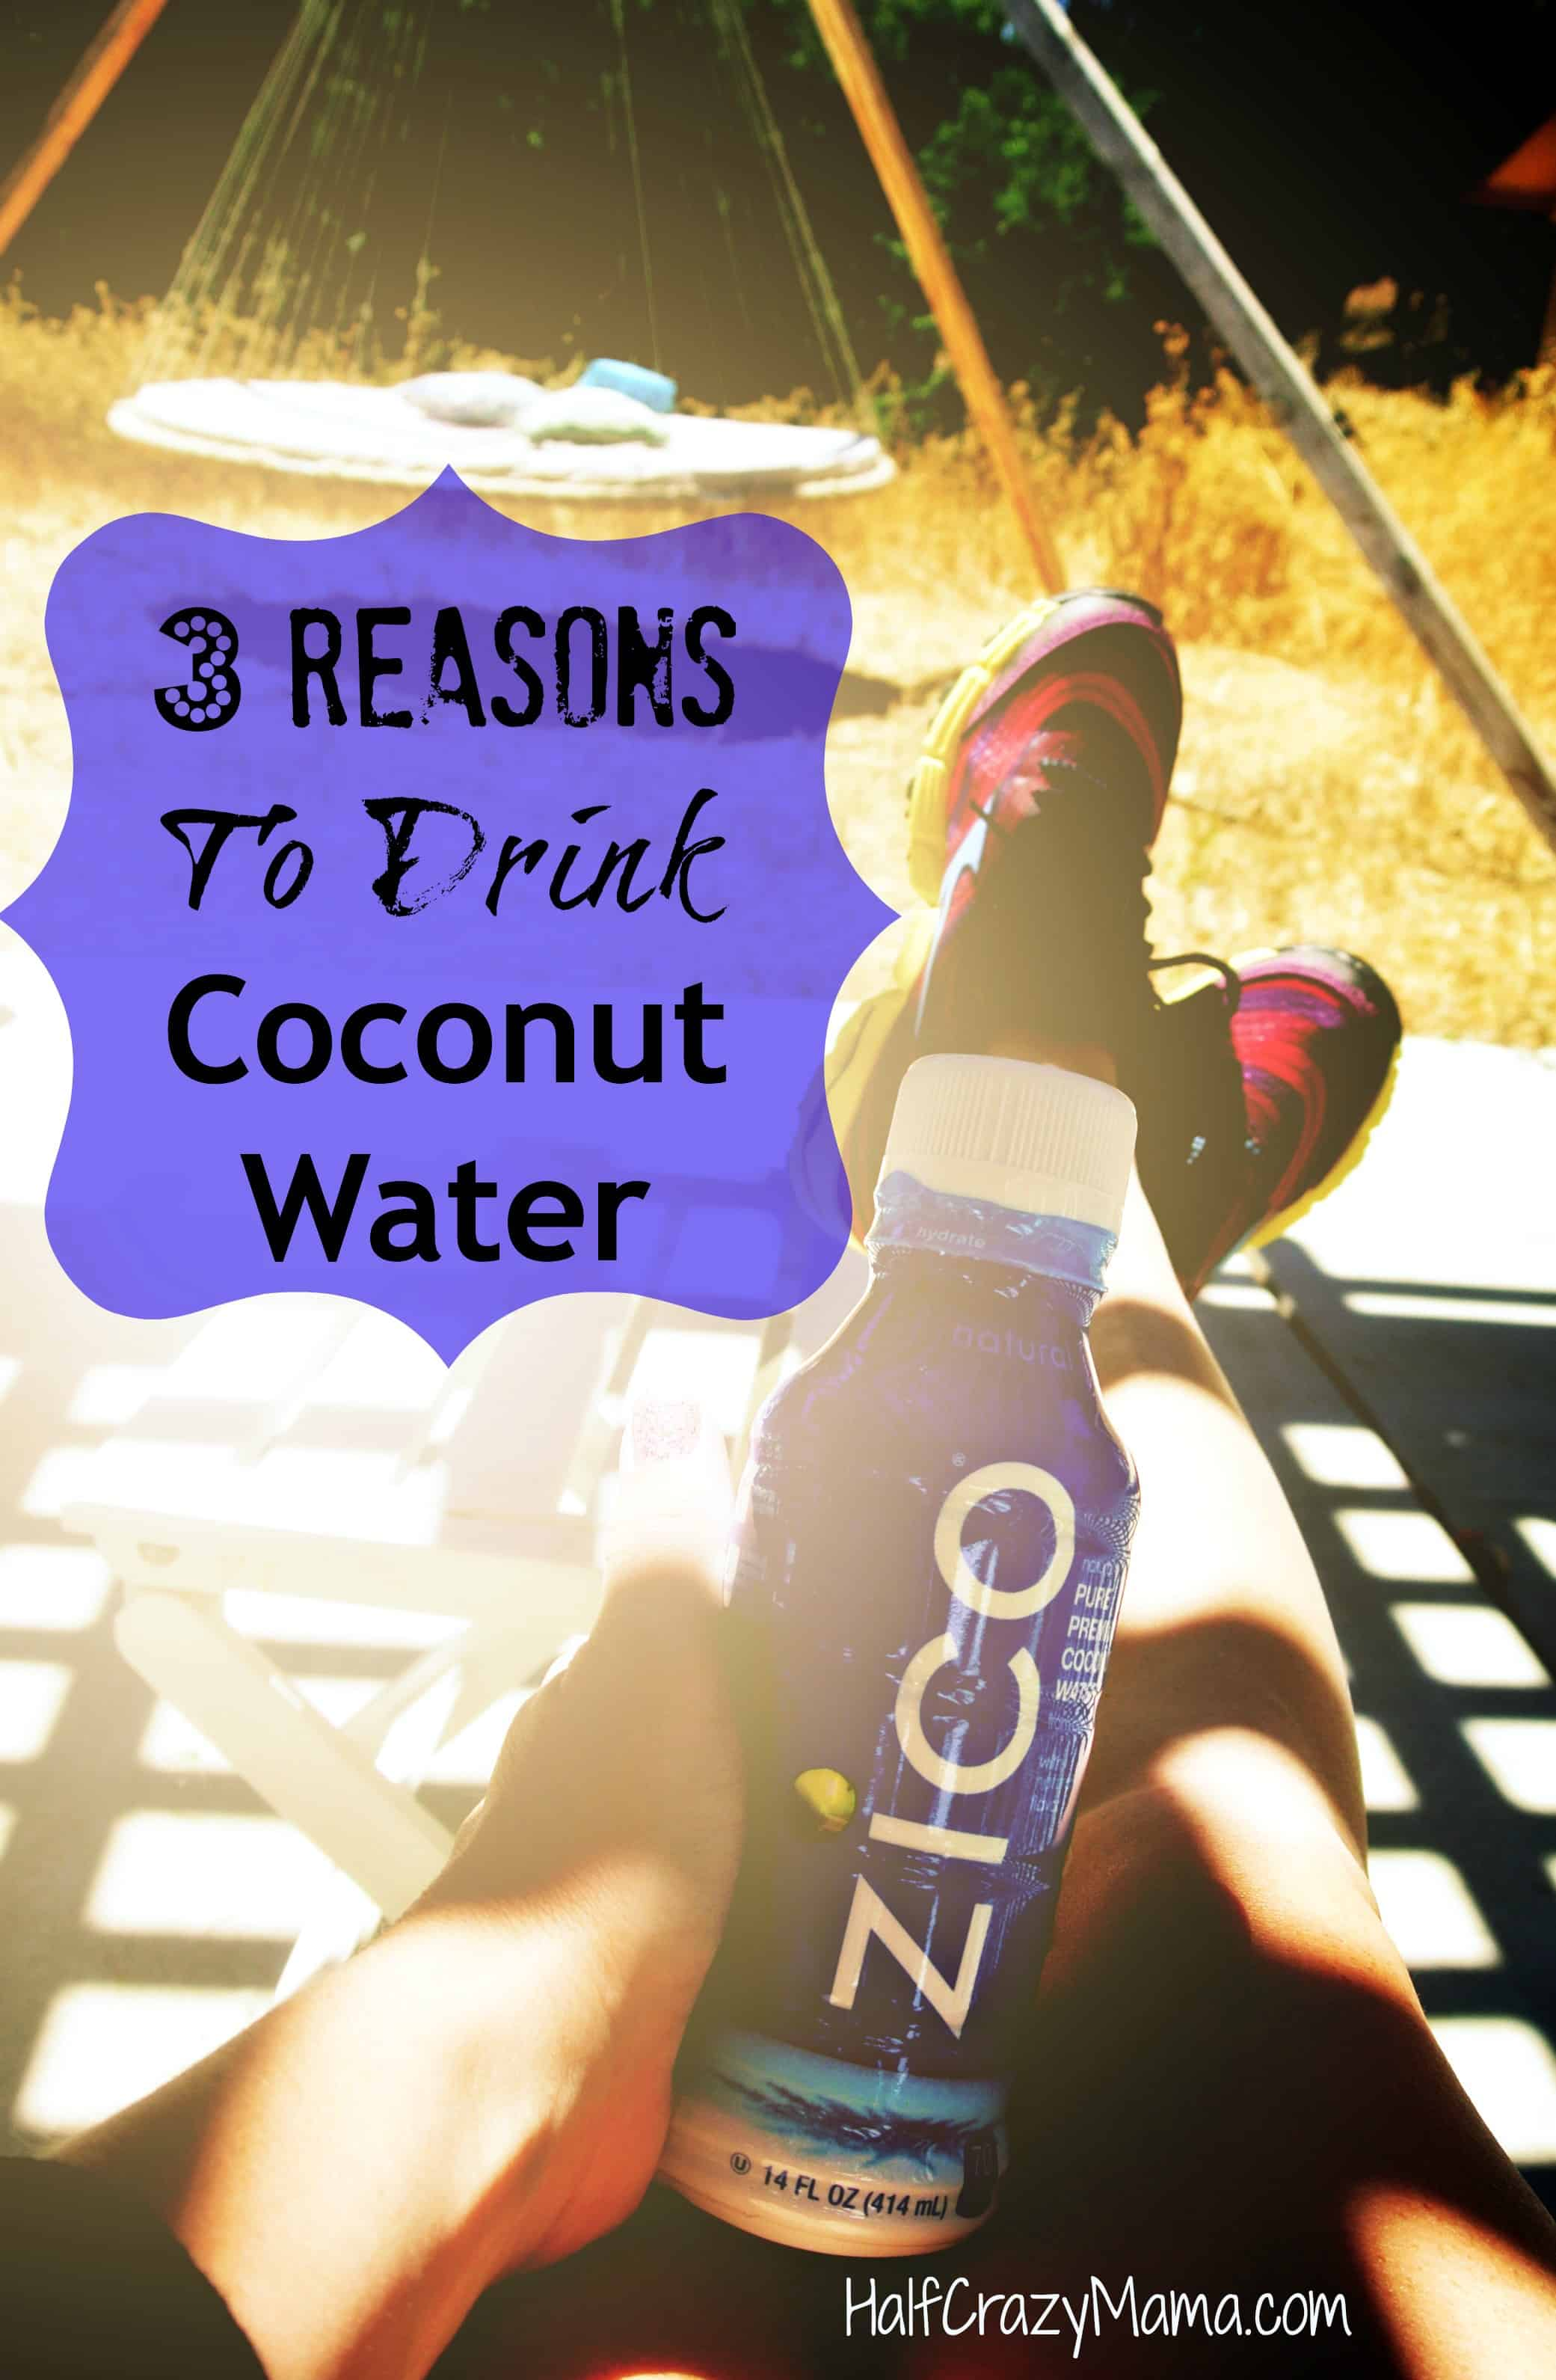 Zico 3 reasons to drink coconut water